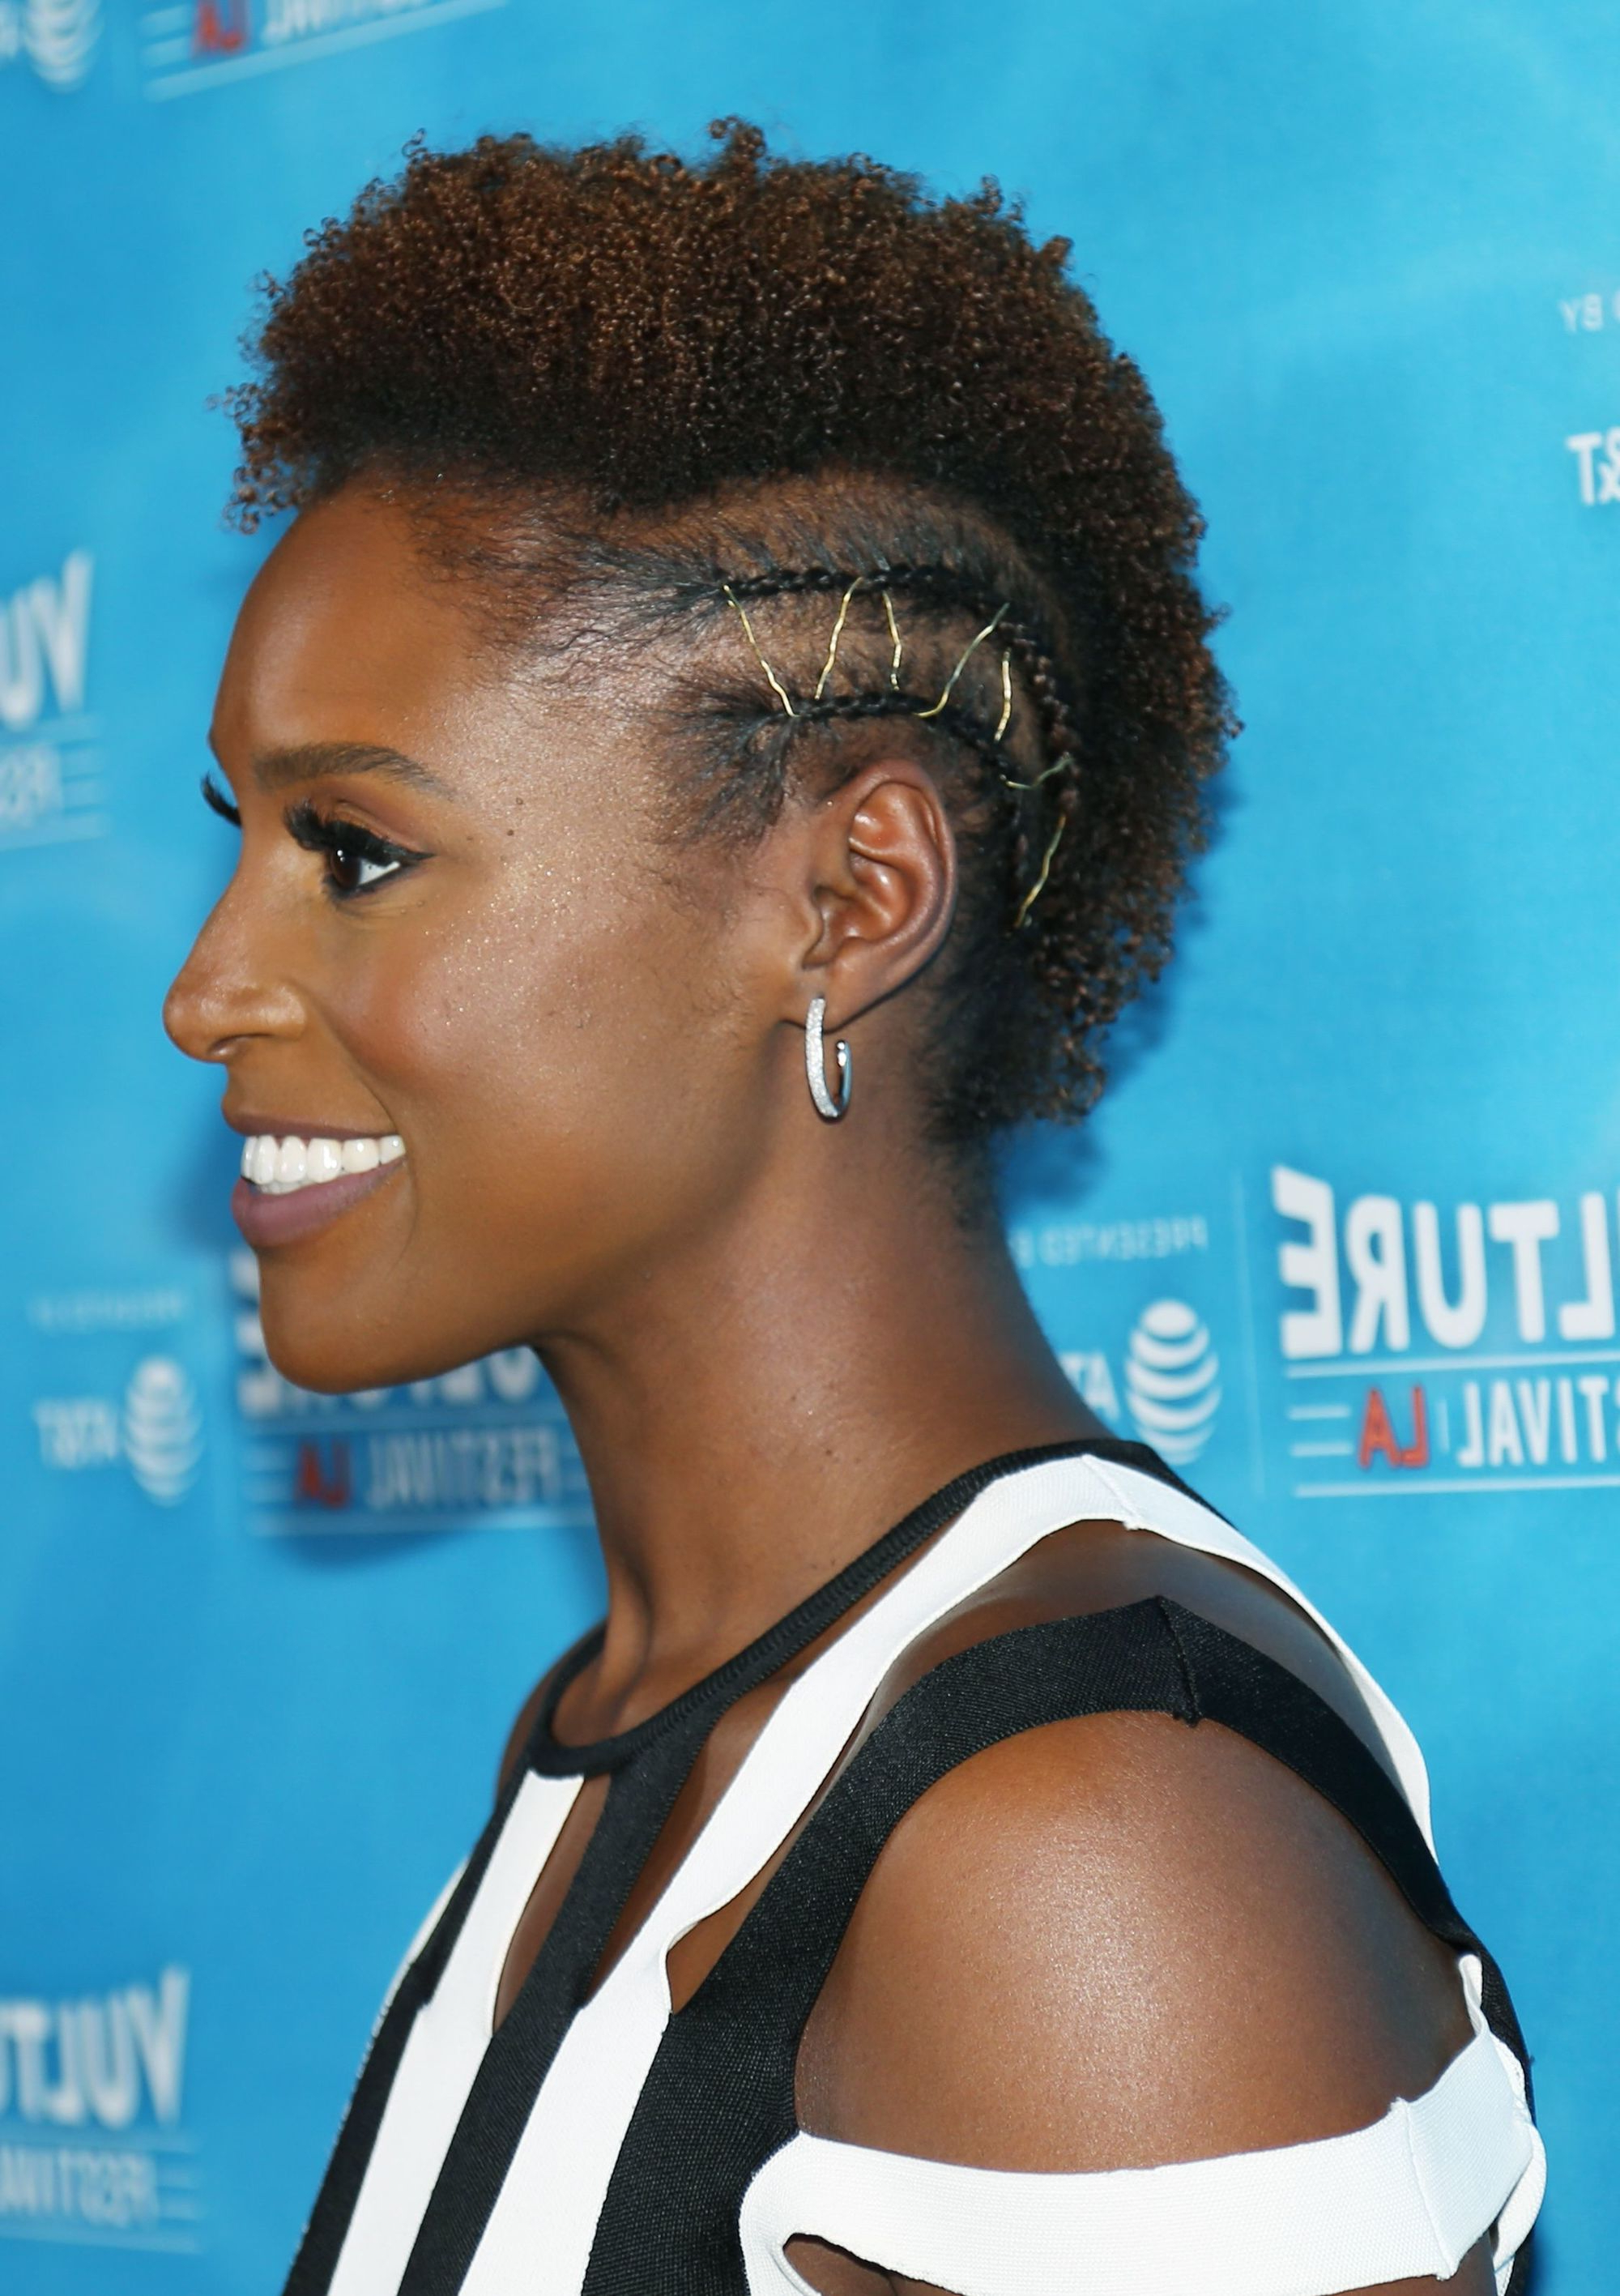 2019 Black Twisted Mohawk Braid Hairstyles With 10 Mohawk Hairstyles For Black Women You Seriously Need To (View 3 of 20)